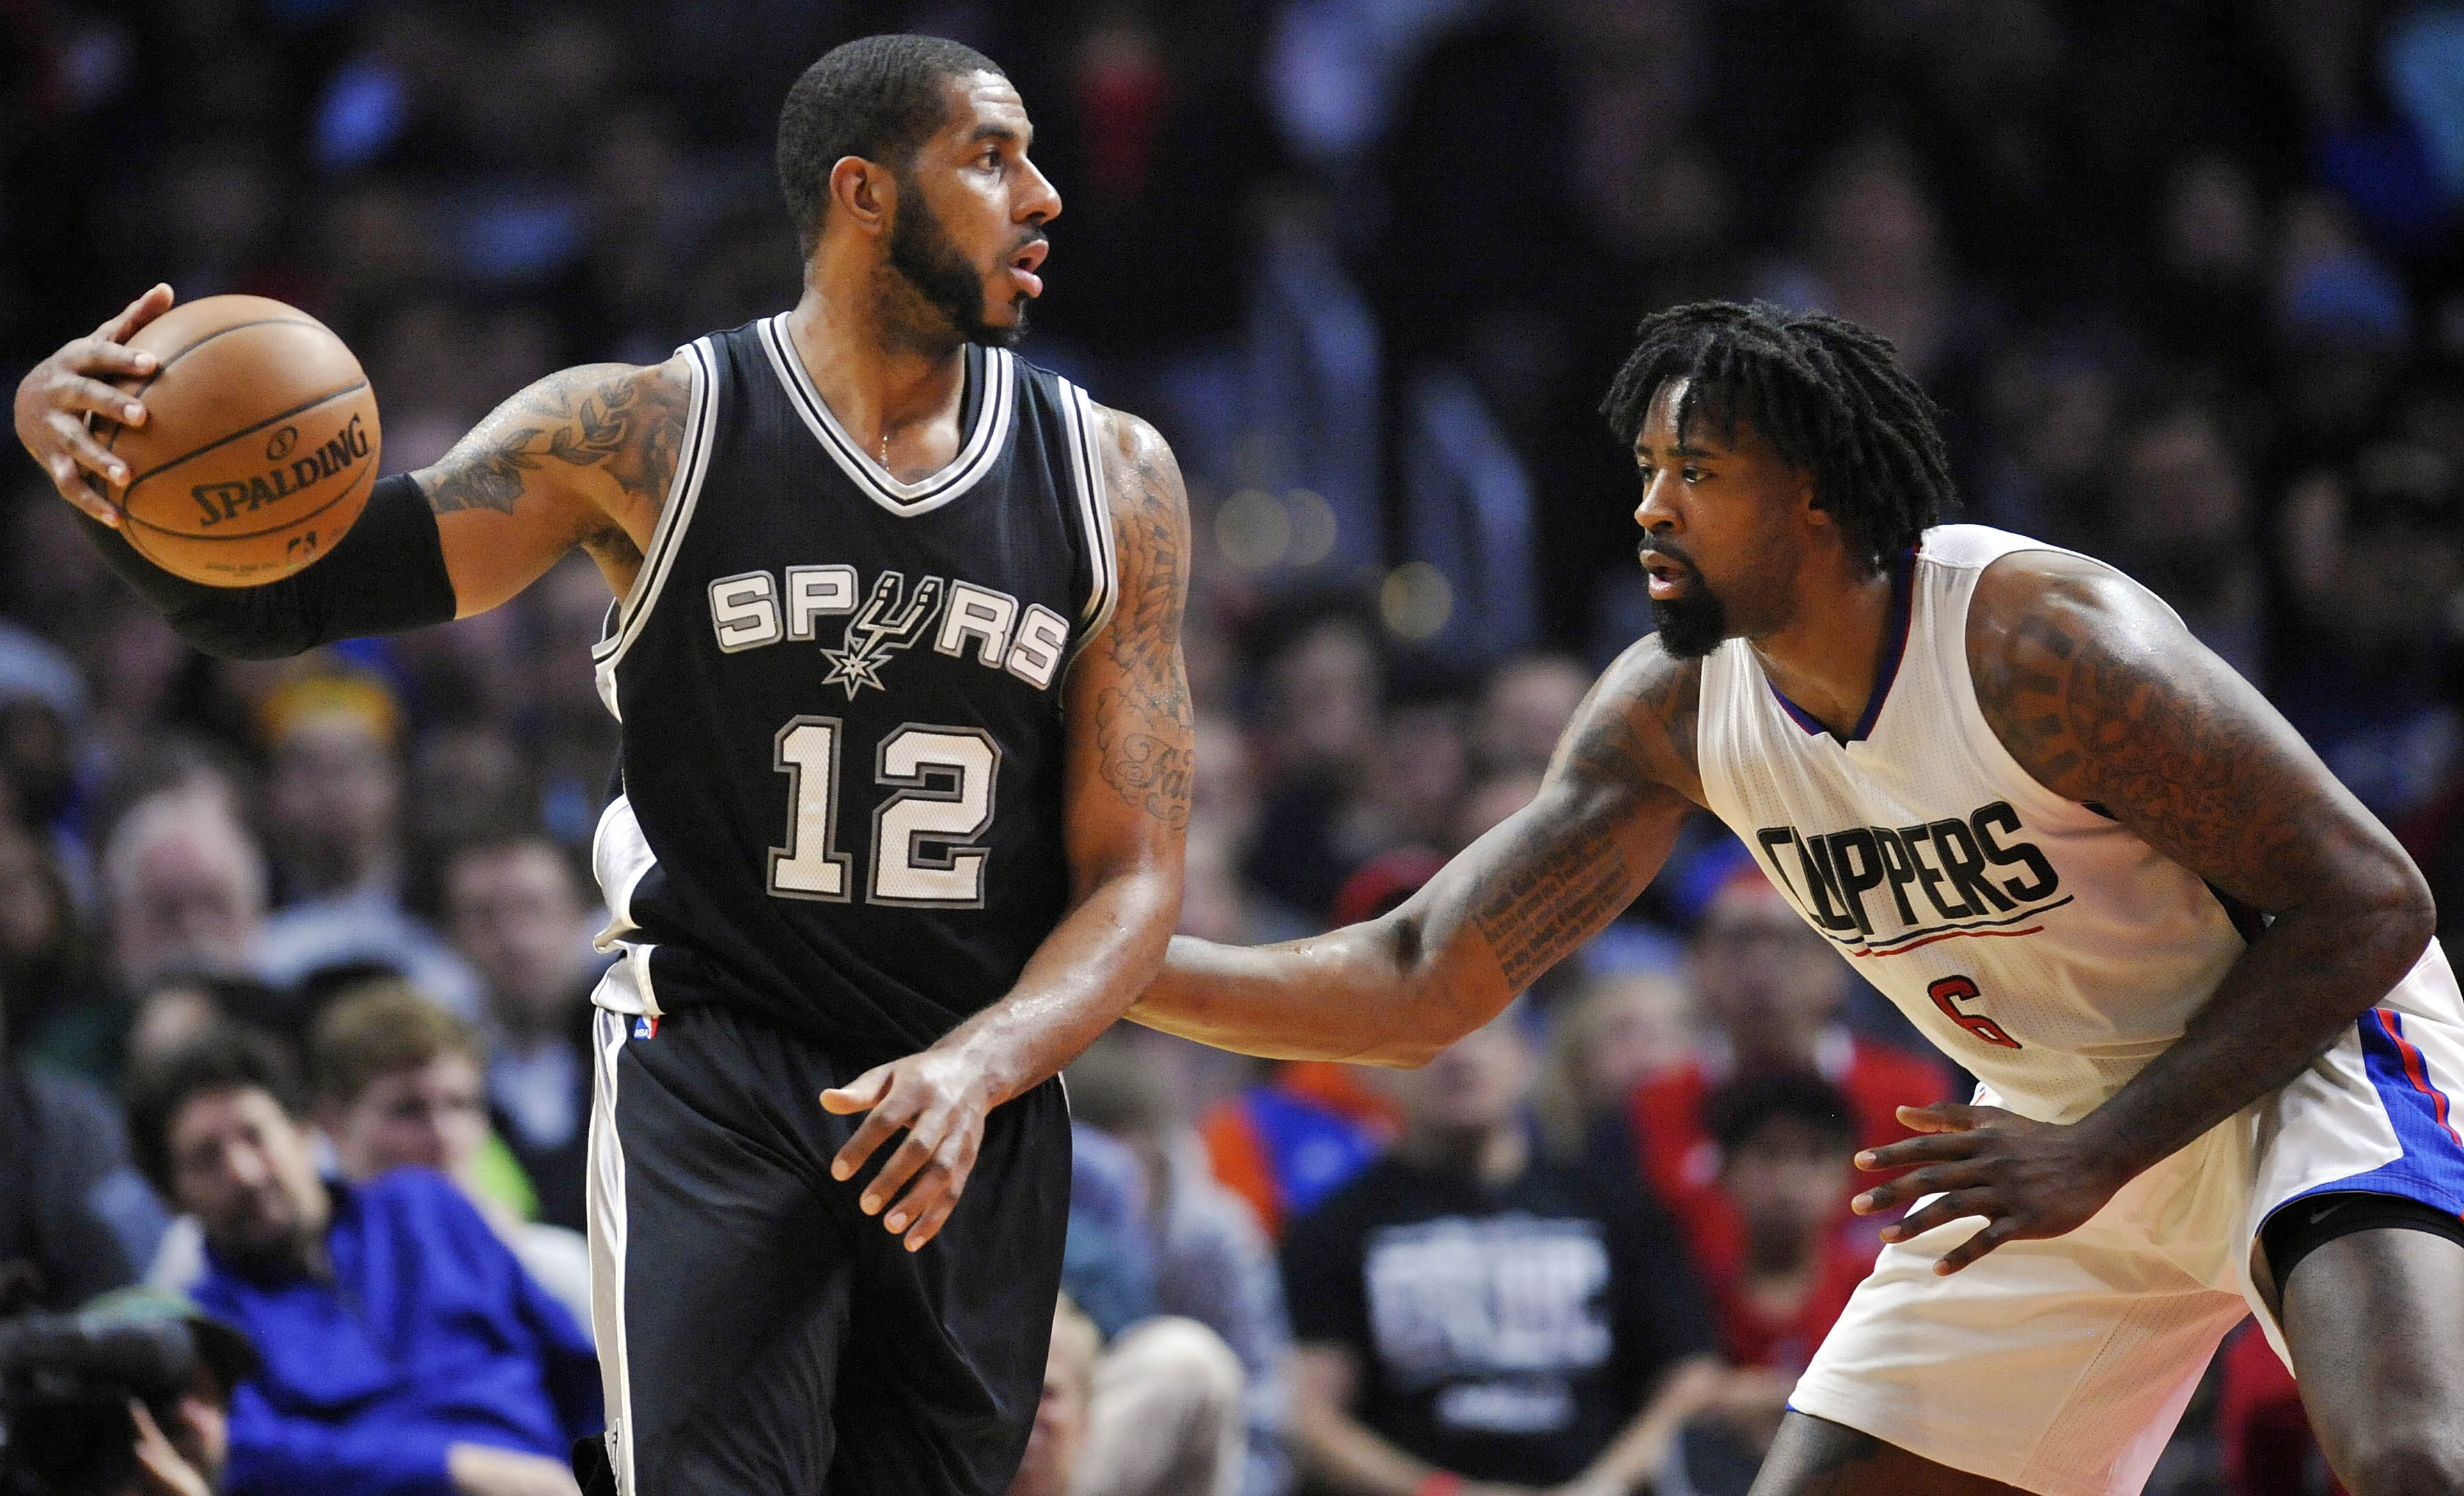 December 22, 2016; Los Angeles, CA, USA; San Antonio Spurs forward LaMarcus Aldridge (12) controls the ball against the defense of Los Angeles Clippers center DeAndre Jordan (6) during the first half  at Staples Center. Mandatory Credit: Gary A. Vasquez-USA TODAY Sports